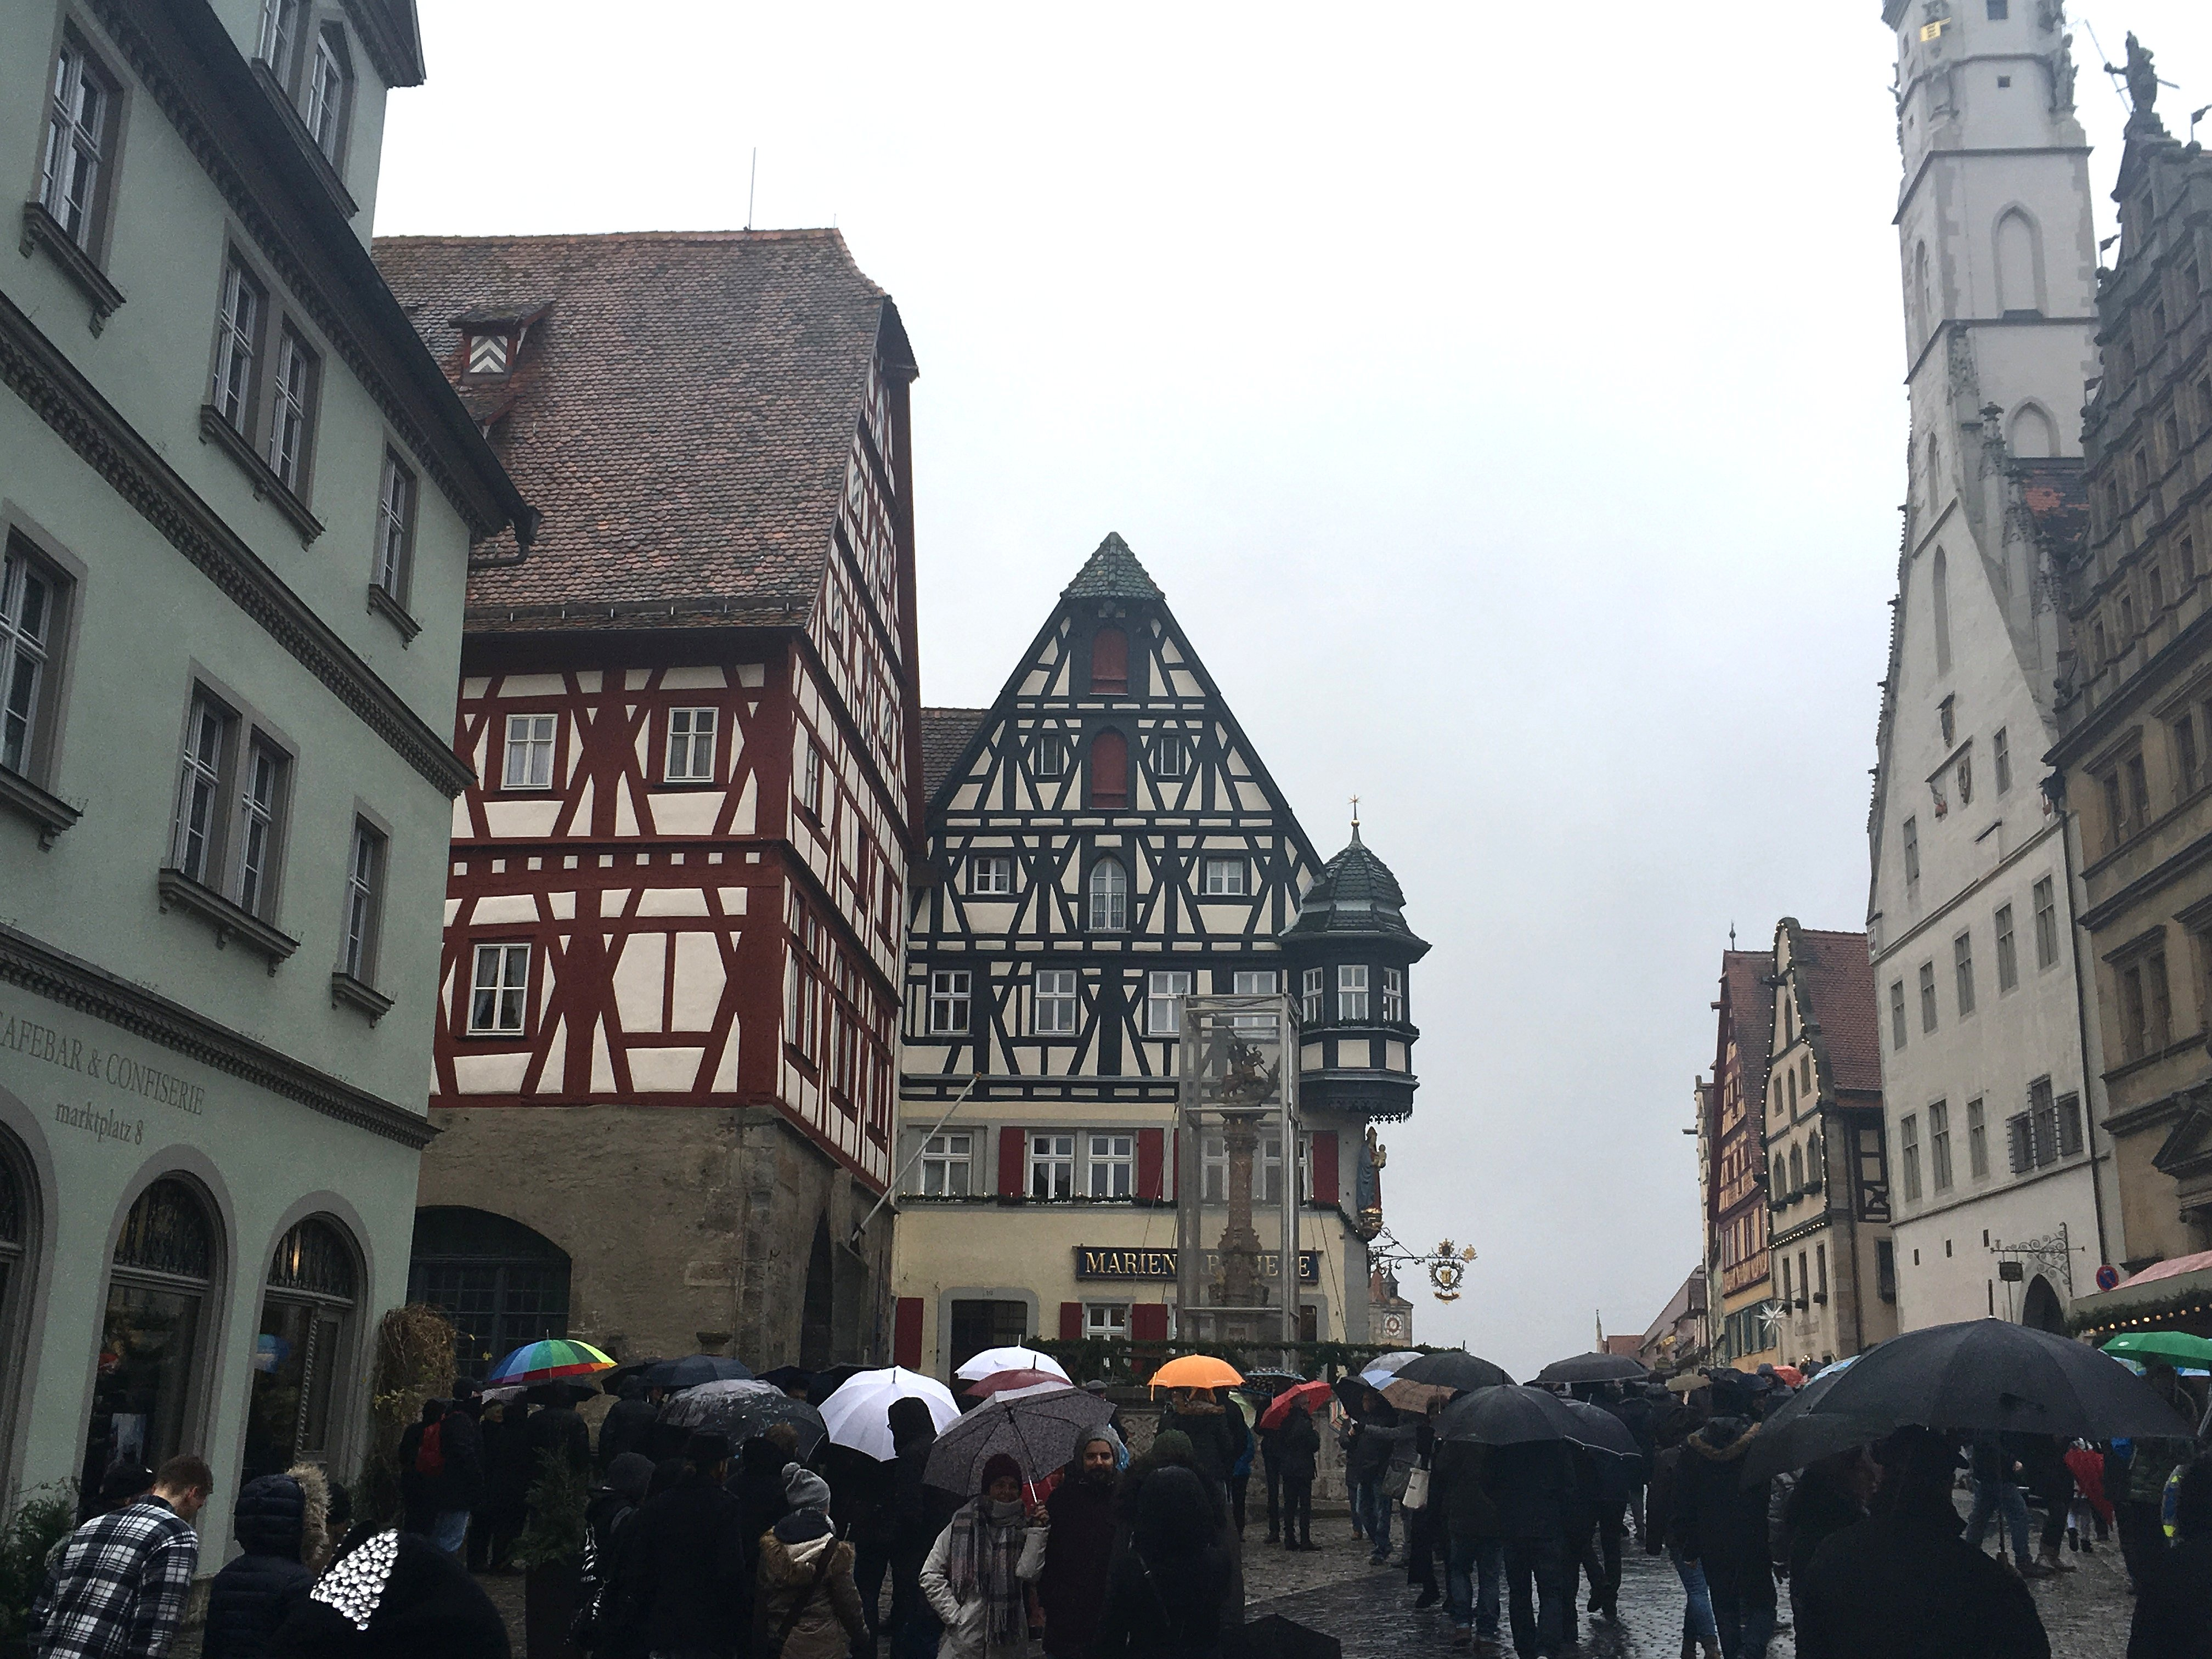 A rainy day in Rothenberg.